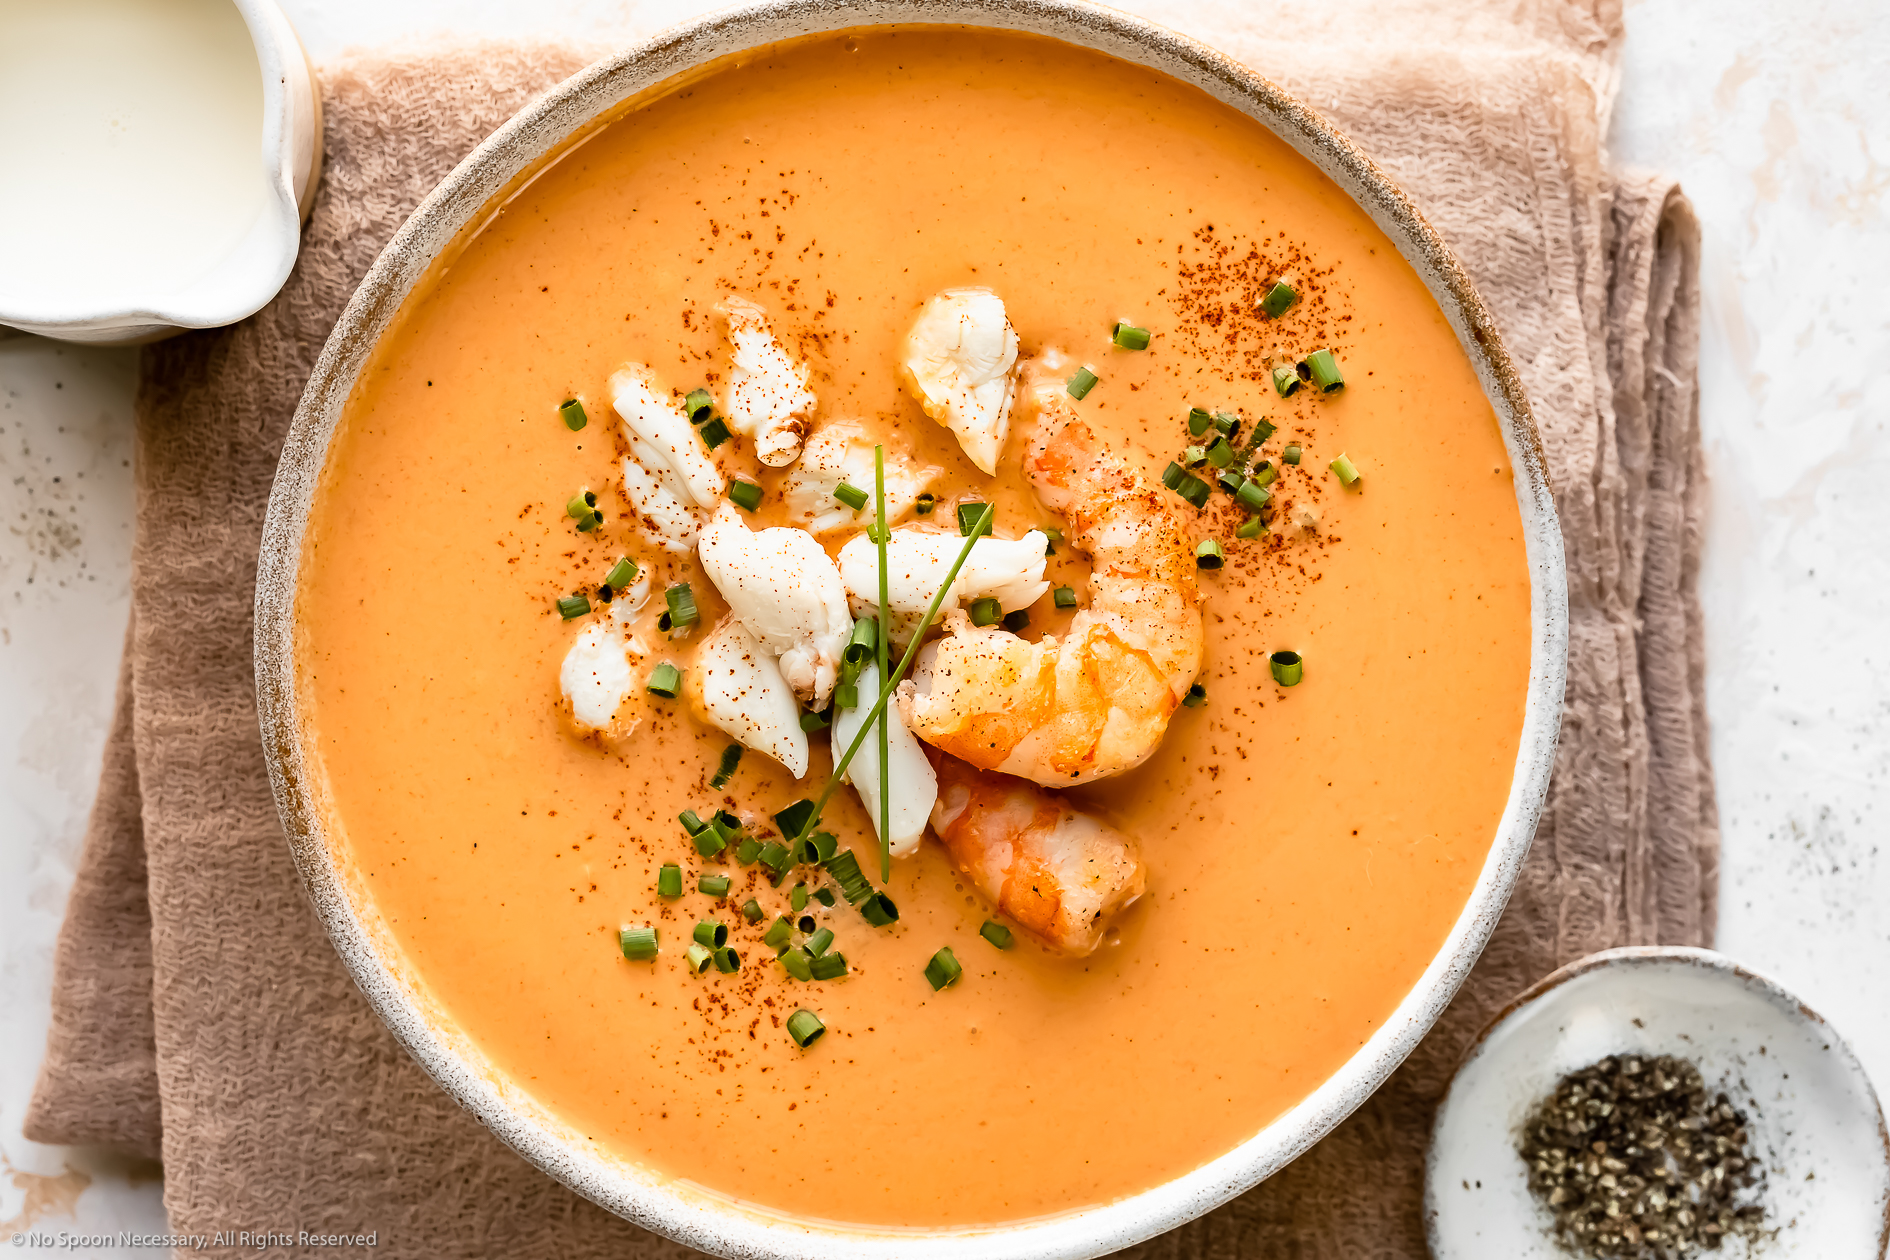 Overhead photo of Shrimp & Crab Seafood Bisque garnished with snipped chives in a white soup bowl with a ramekin of fresh cracked pepper and a small pitcher of cream next to the bowl.